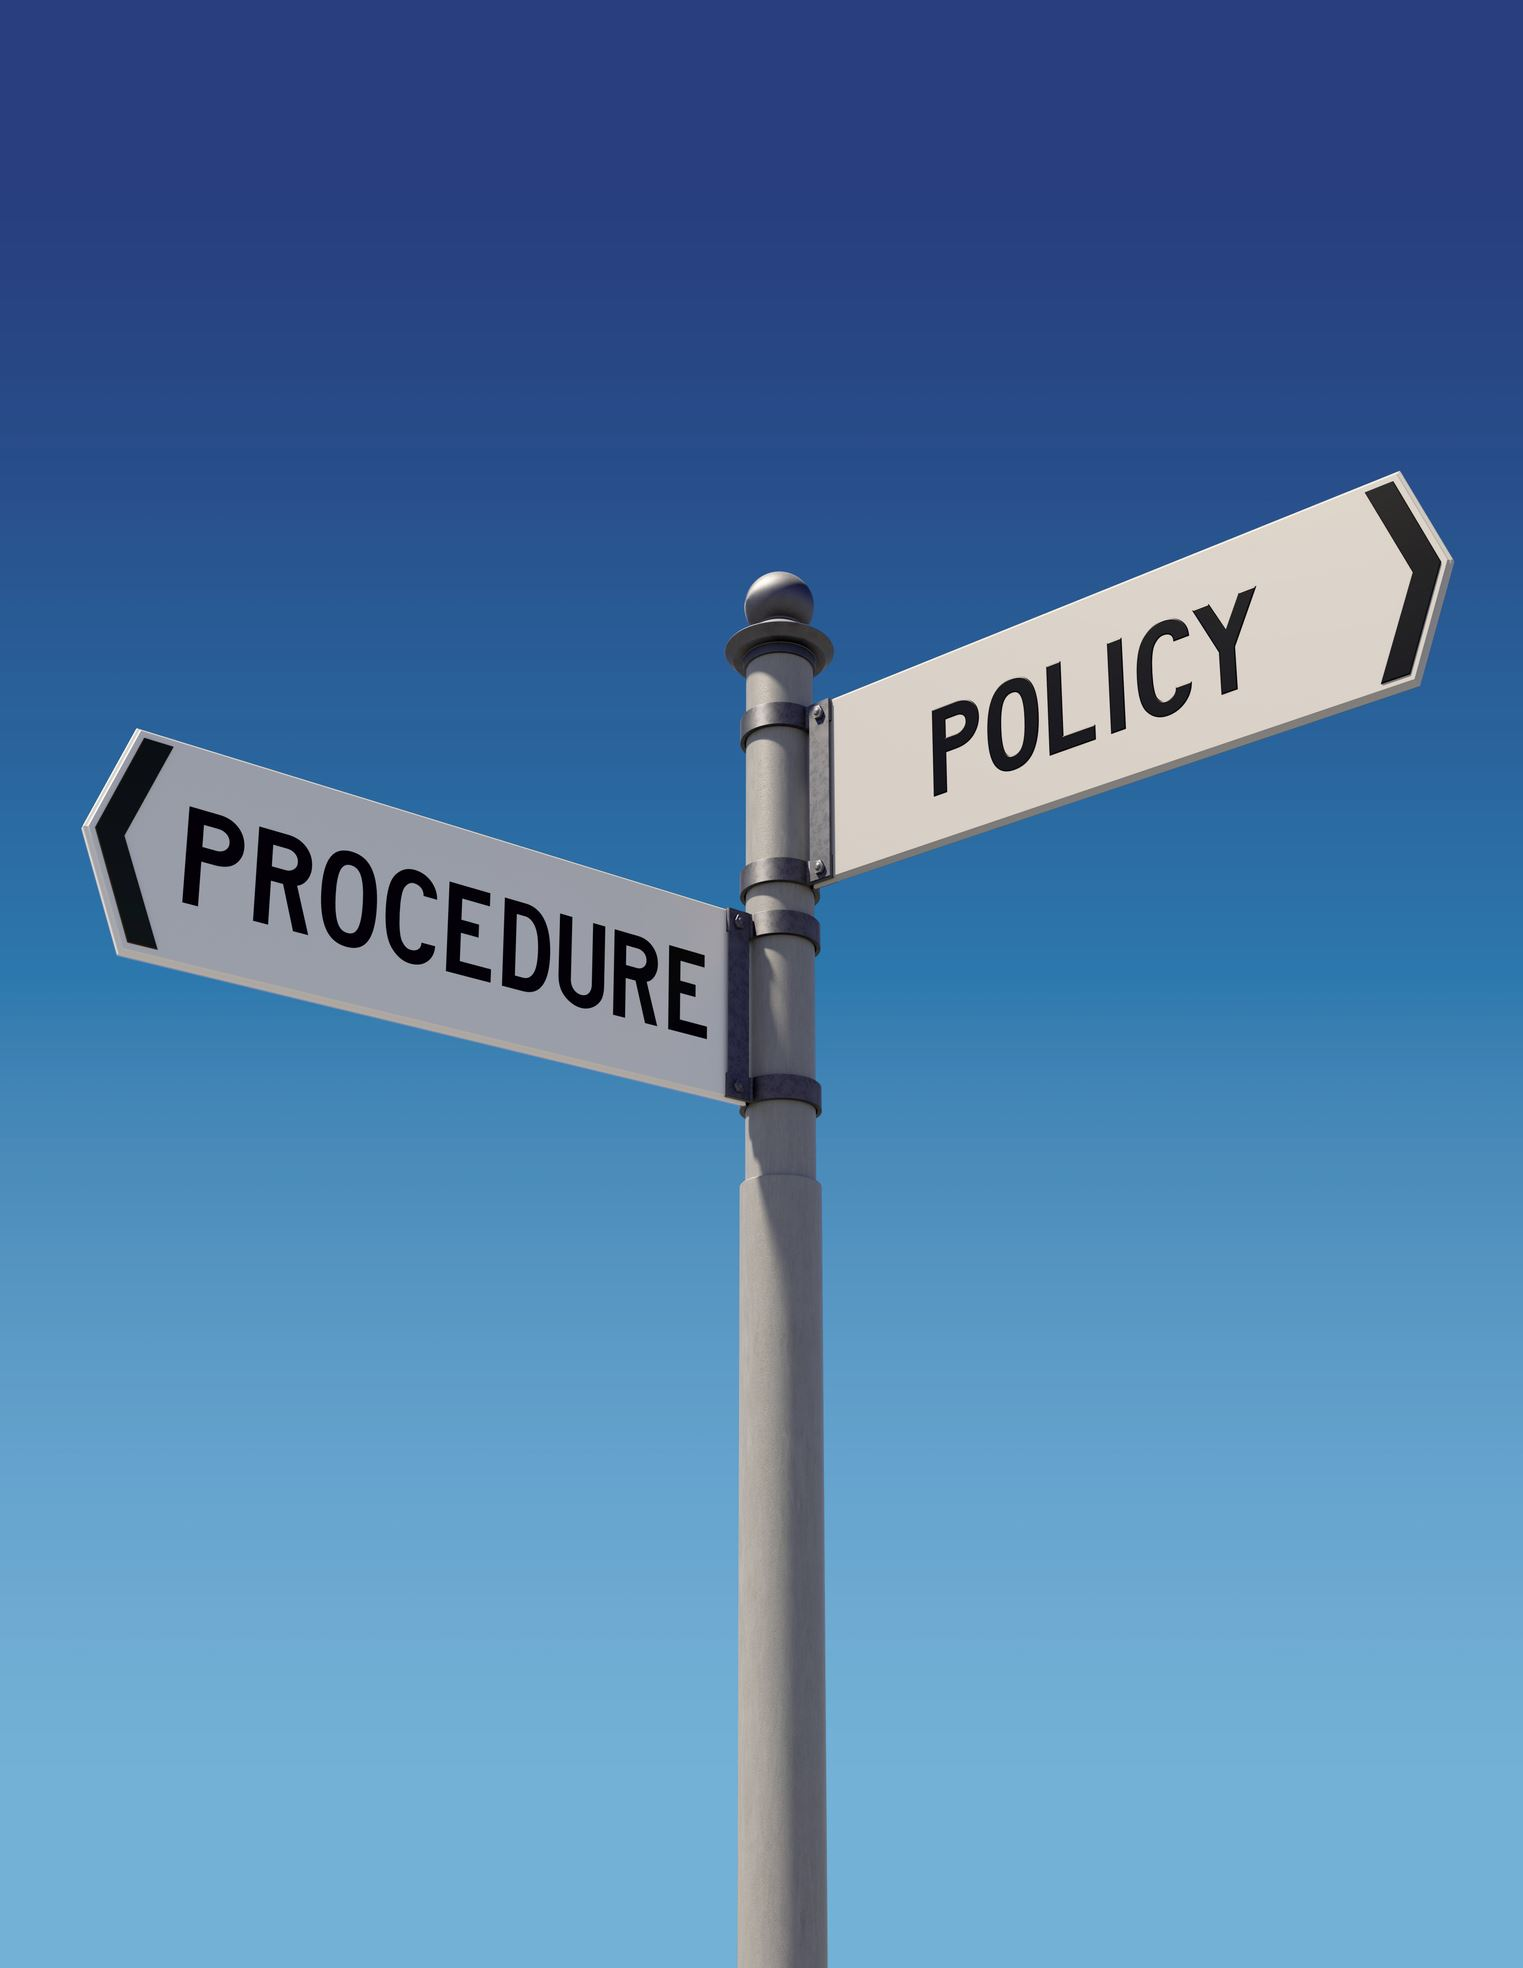 Policy and Procedure Street Signs